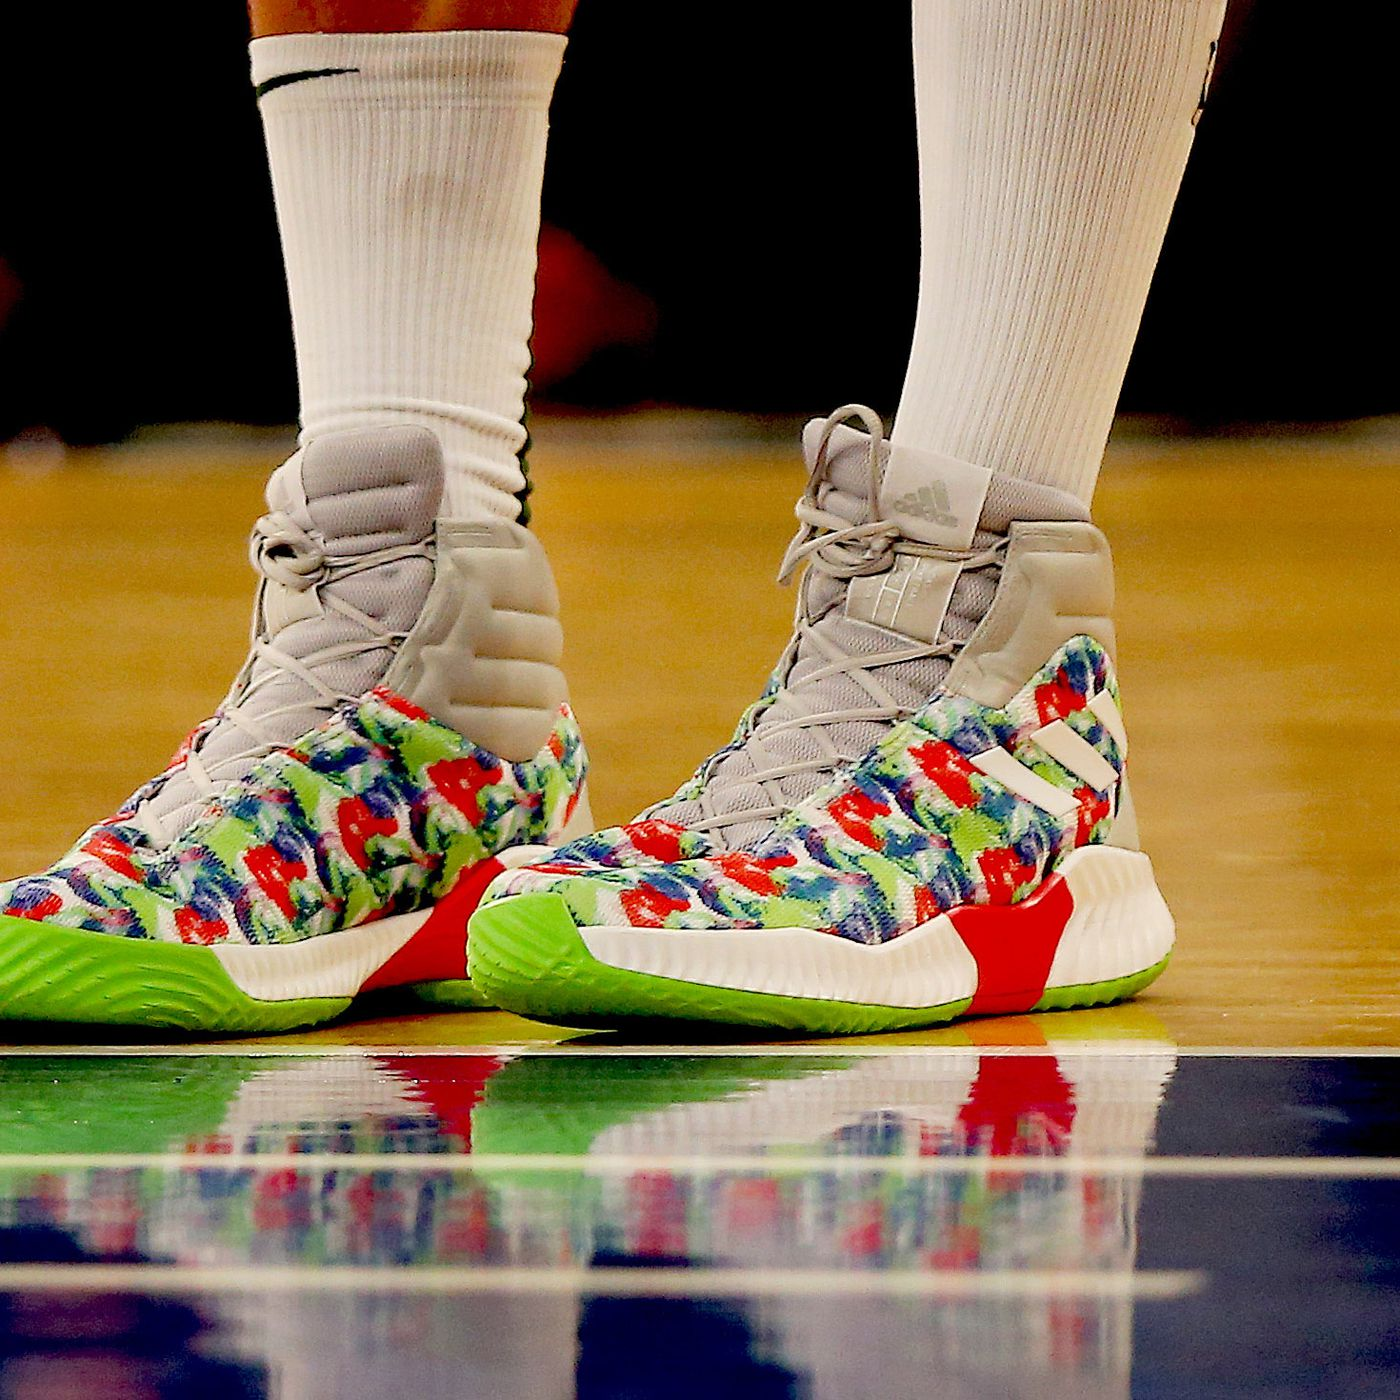 d6a735e919e0 The best and worst Christmas Day NBA sneakers - SBNation.com